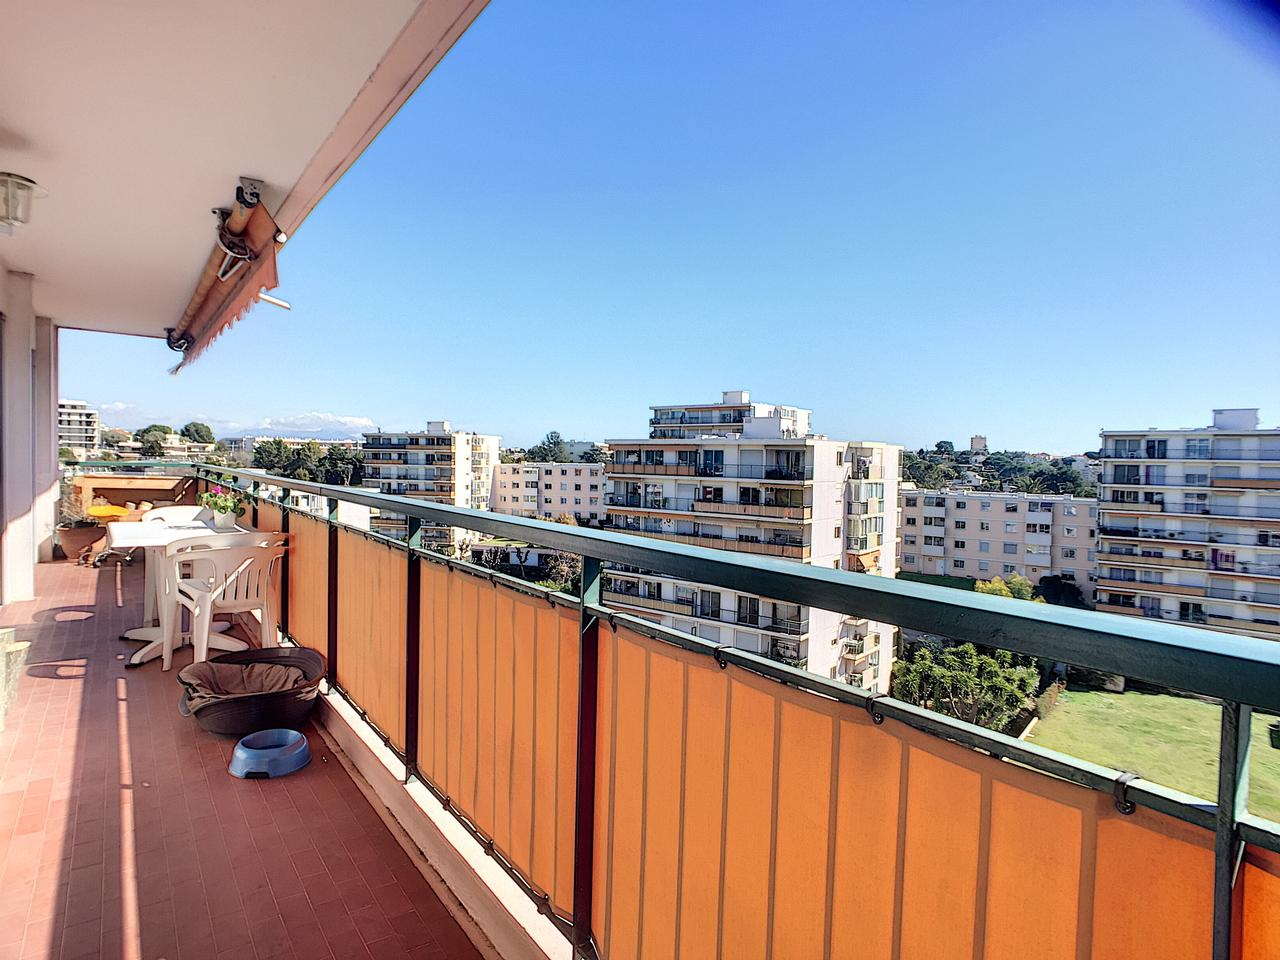 Real Estate Nice Sea View Apartment Antibes Antibes 5 Rooms Sea View  Apartment For Sale With Garage